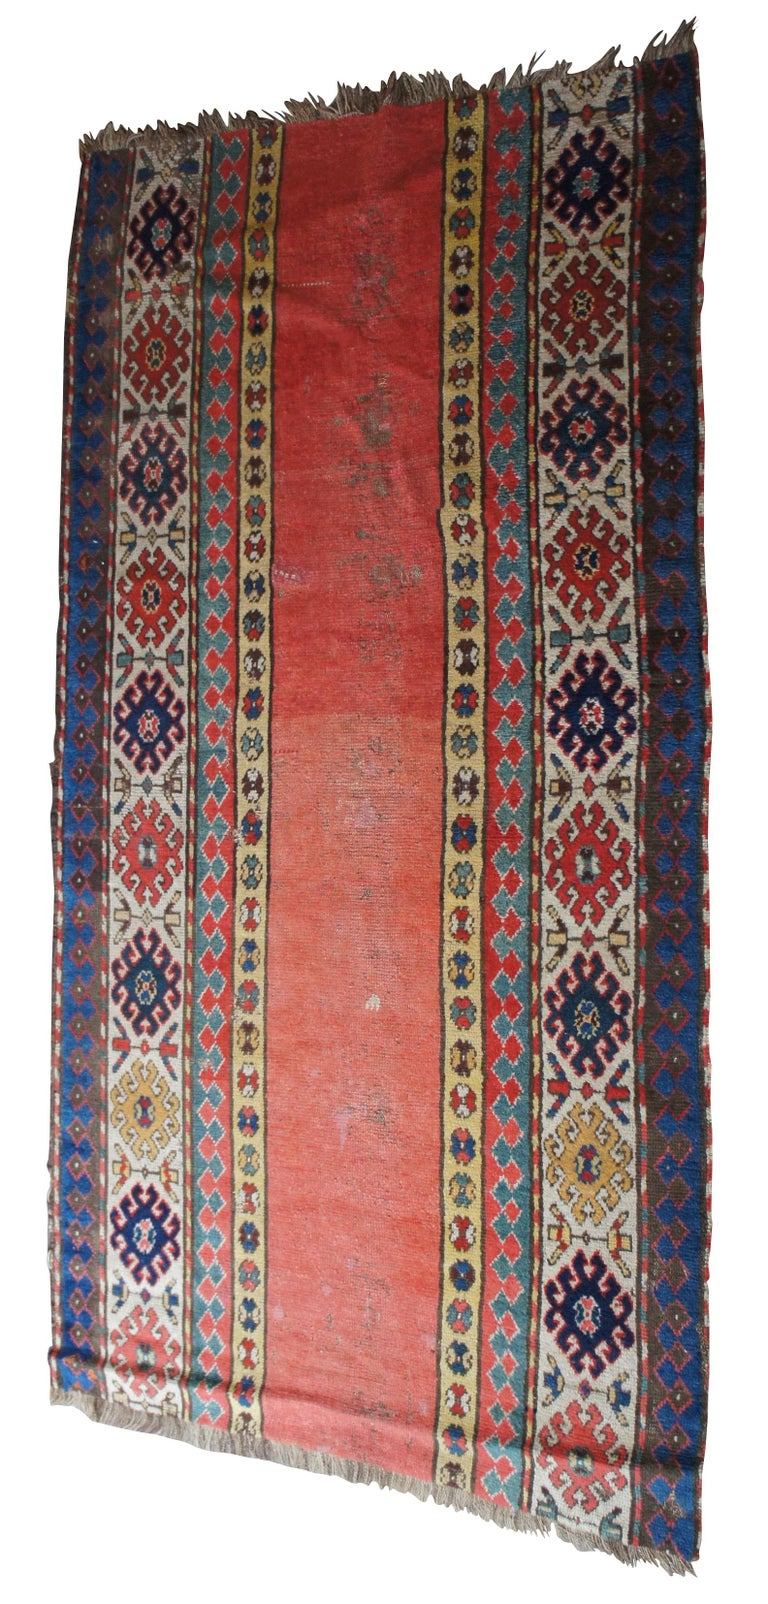 Antique Persian rug runner featuring long floral and geometric designs. Reds, greens, blues, brown, yellow, tan, pink. Measure: 73